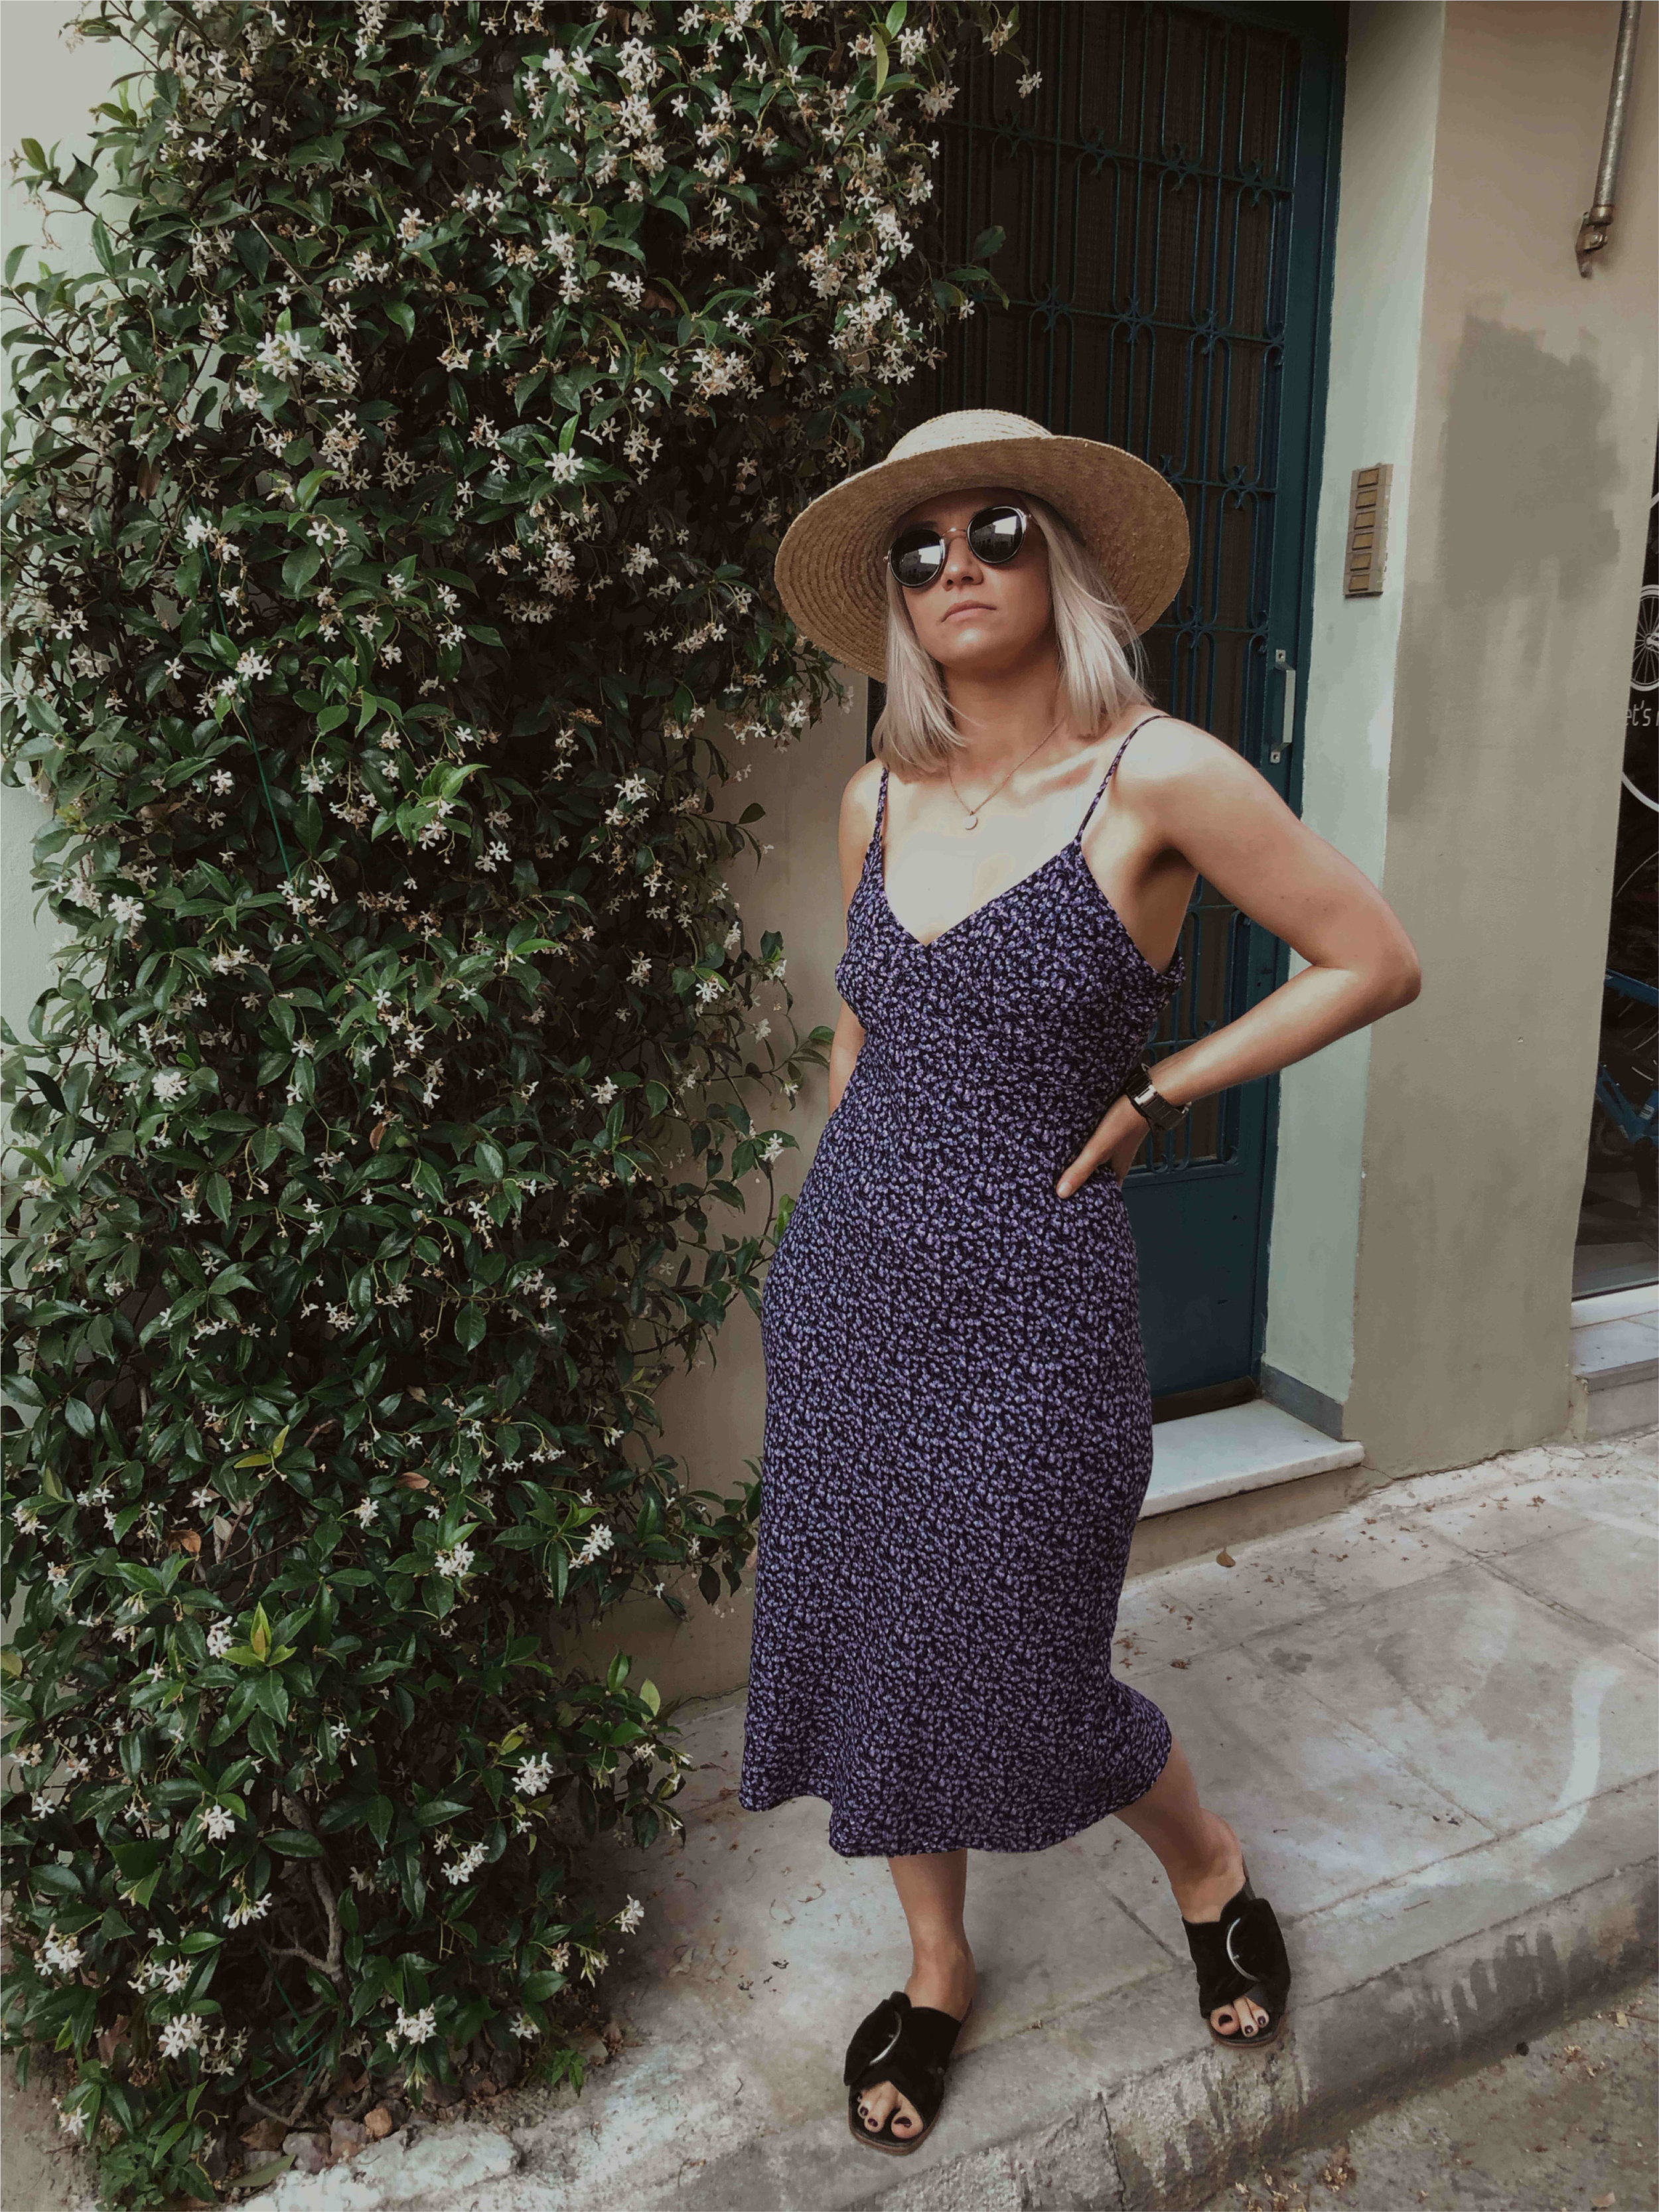 Day trip to Athens, in a vintage slip dress with a straw hat, northern magpie, joey taylor 3